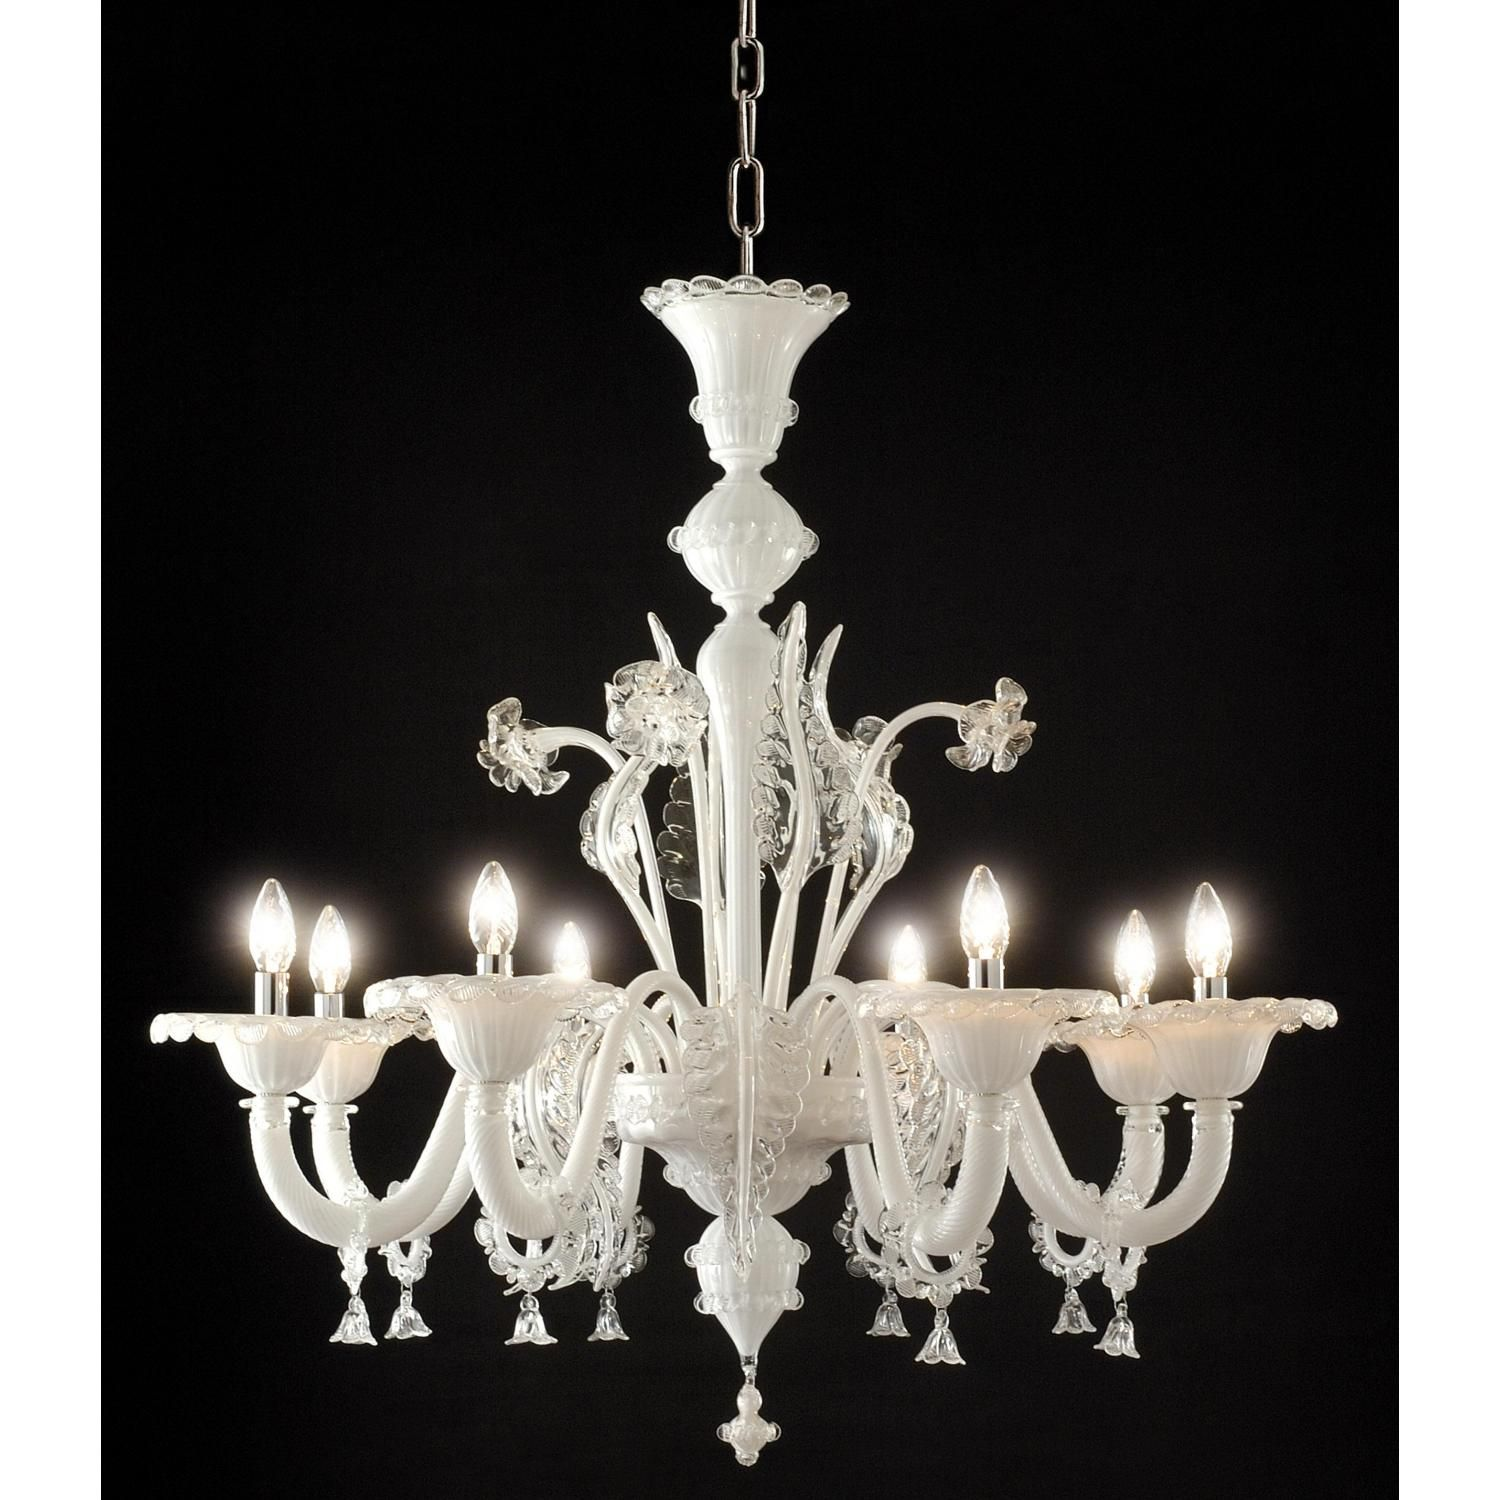 Elegant 8 lights chandelier of the Classic Collection